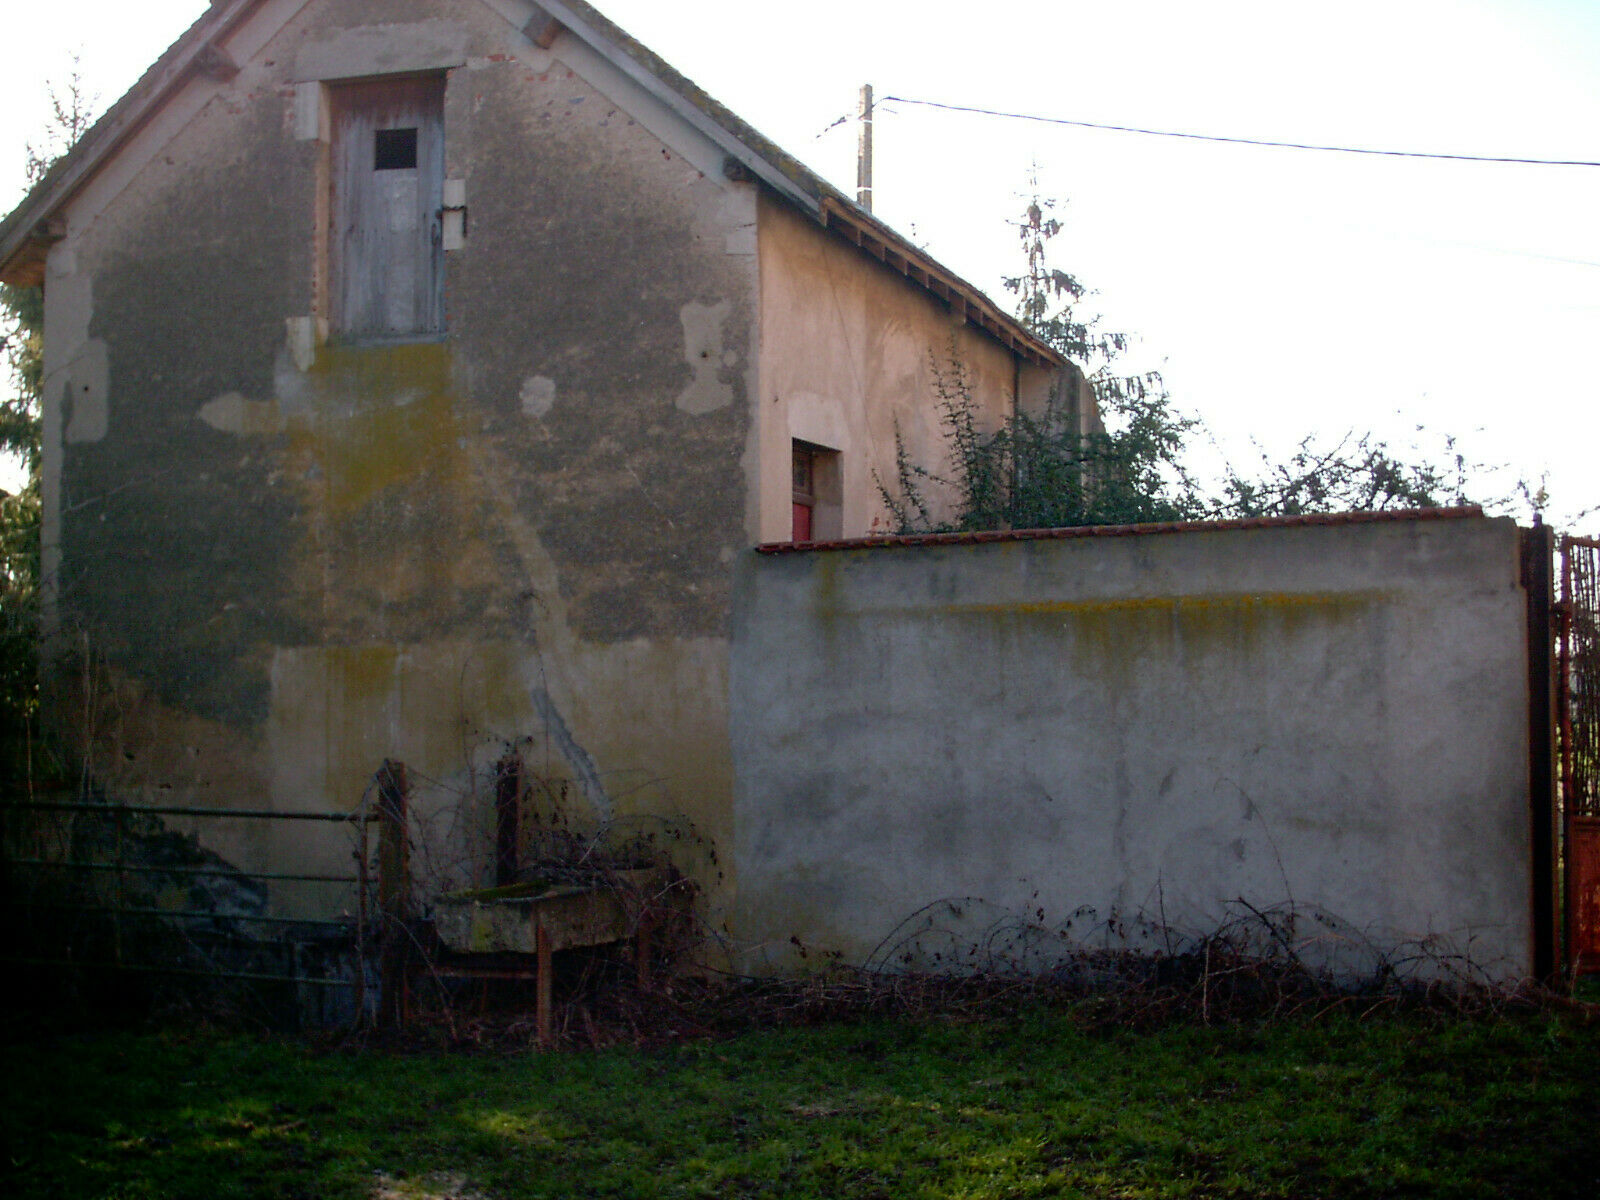 French Fermette, 2 houses for renovation, and 6 hectares of land.